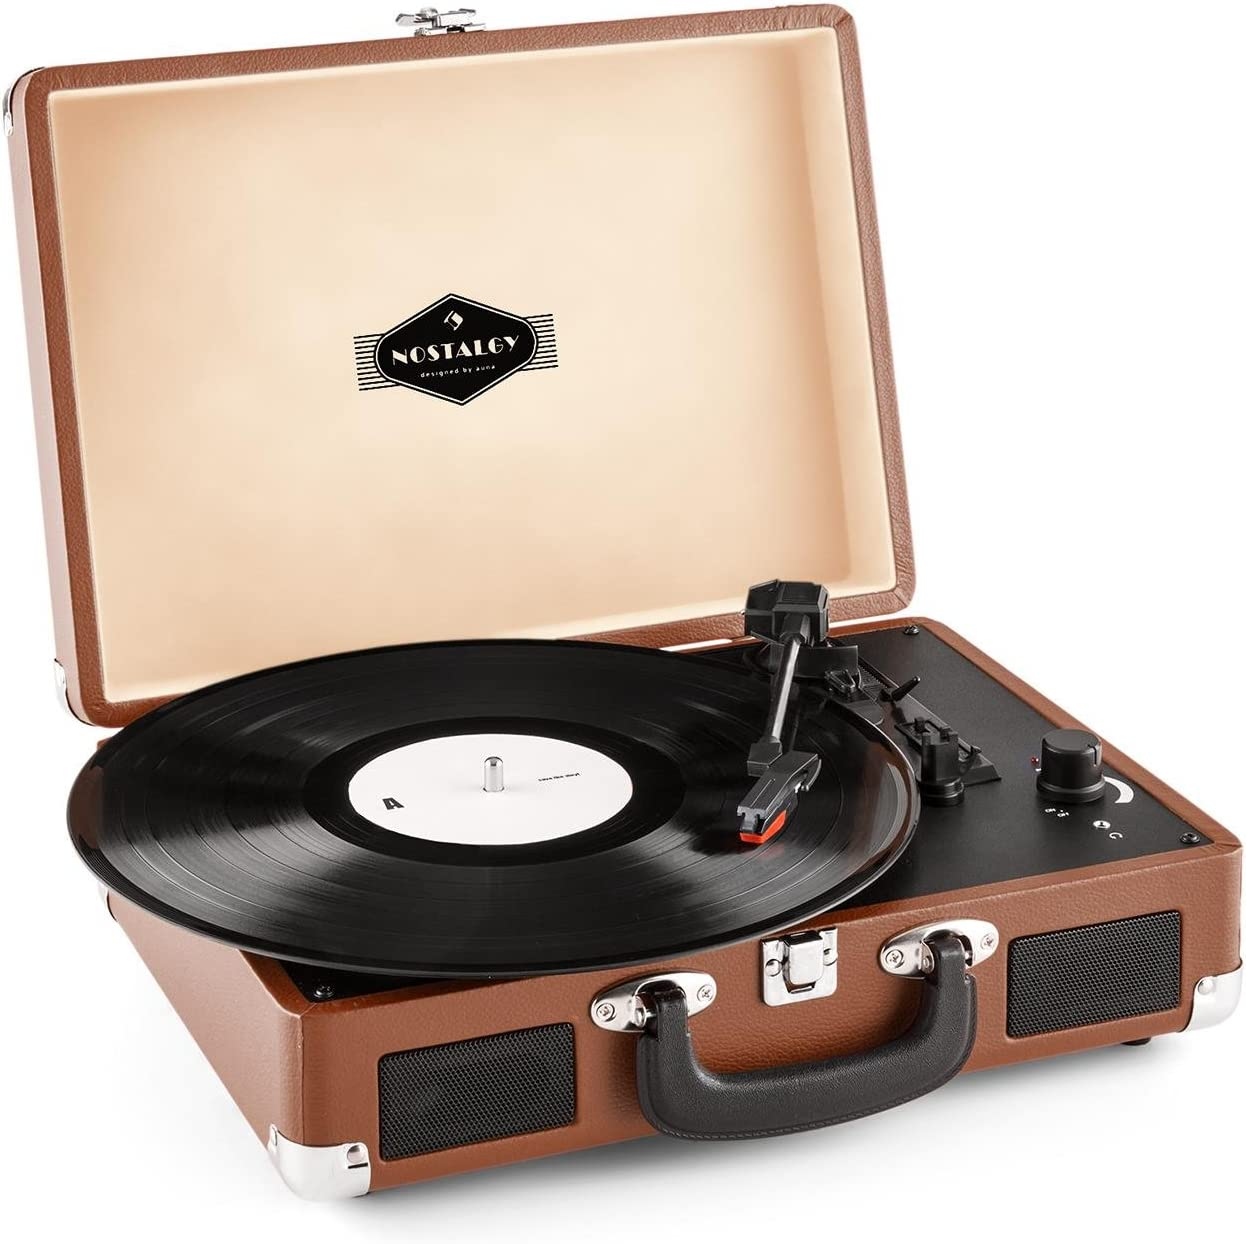 auna Peggy Sue Retro Record Player, Turntable with Built-in Stereo Speakers, Belt-Drive, USB-Port (B), Vinyl LP, Plays 33, 45 and 78 RPM Records, Digitization, Plug & Play, Portable Suitcase, Coffee